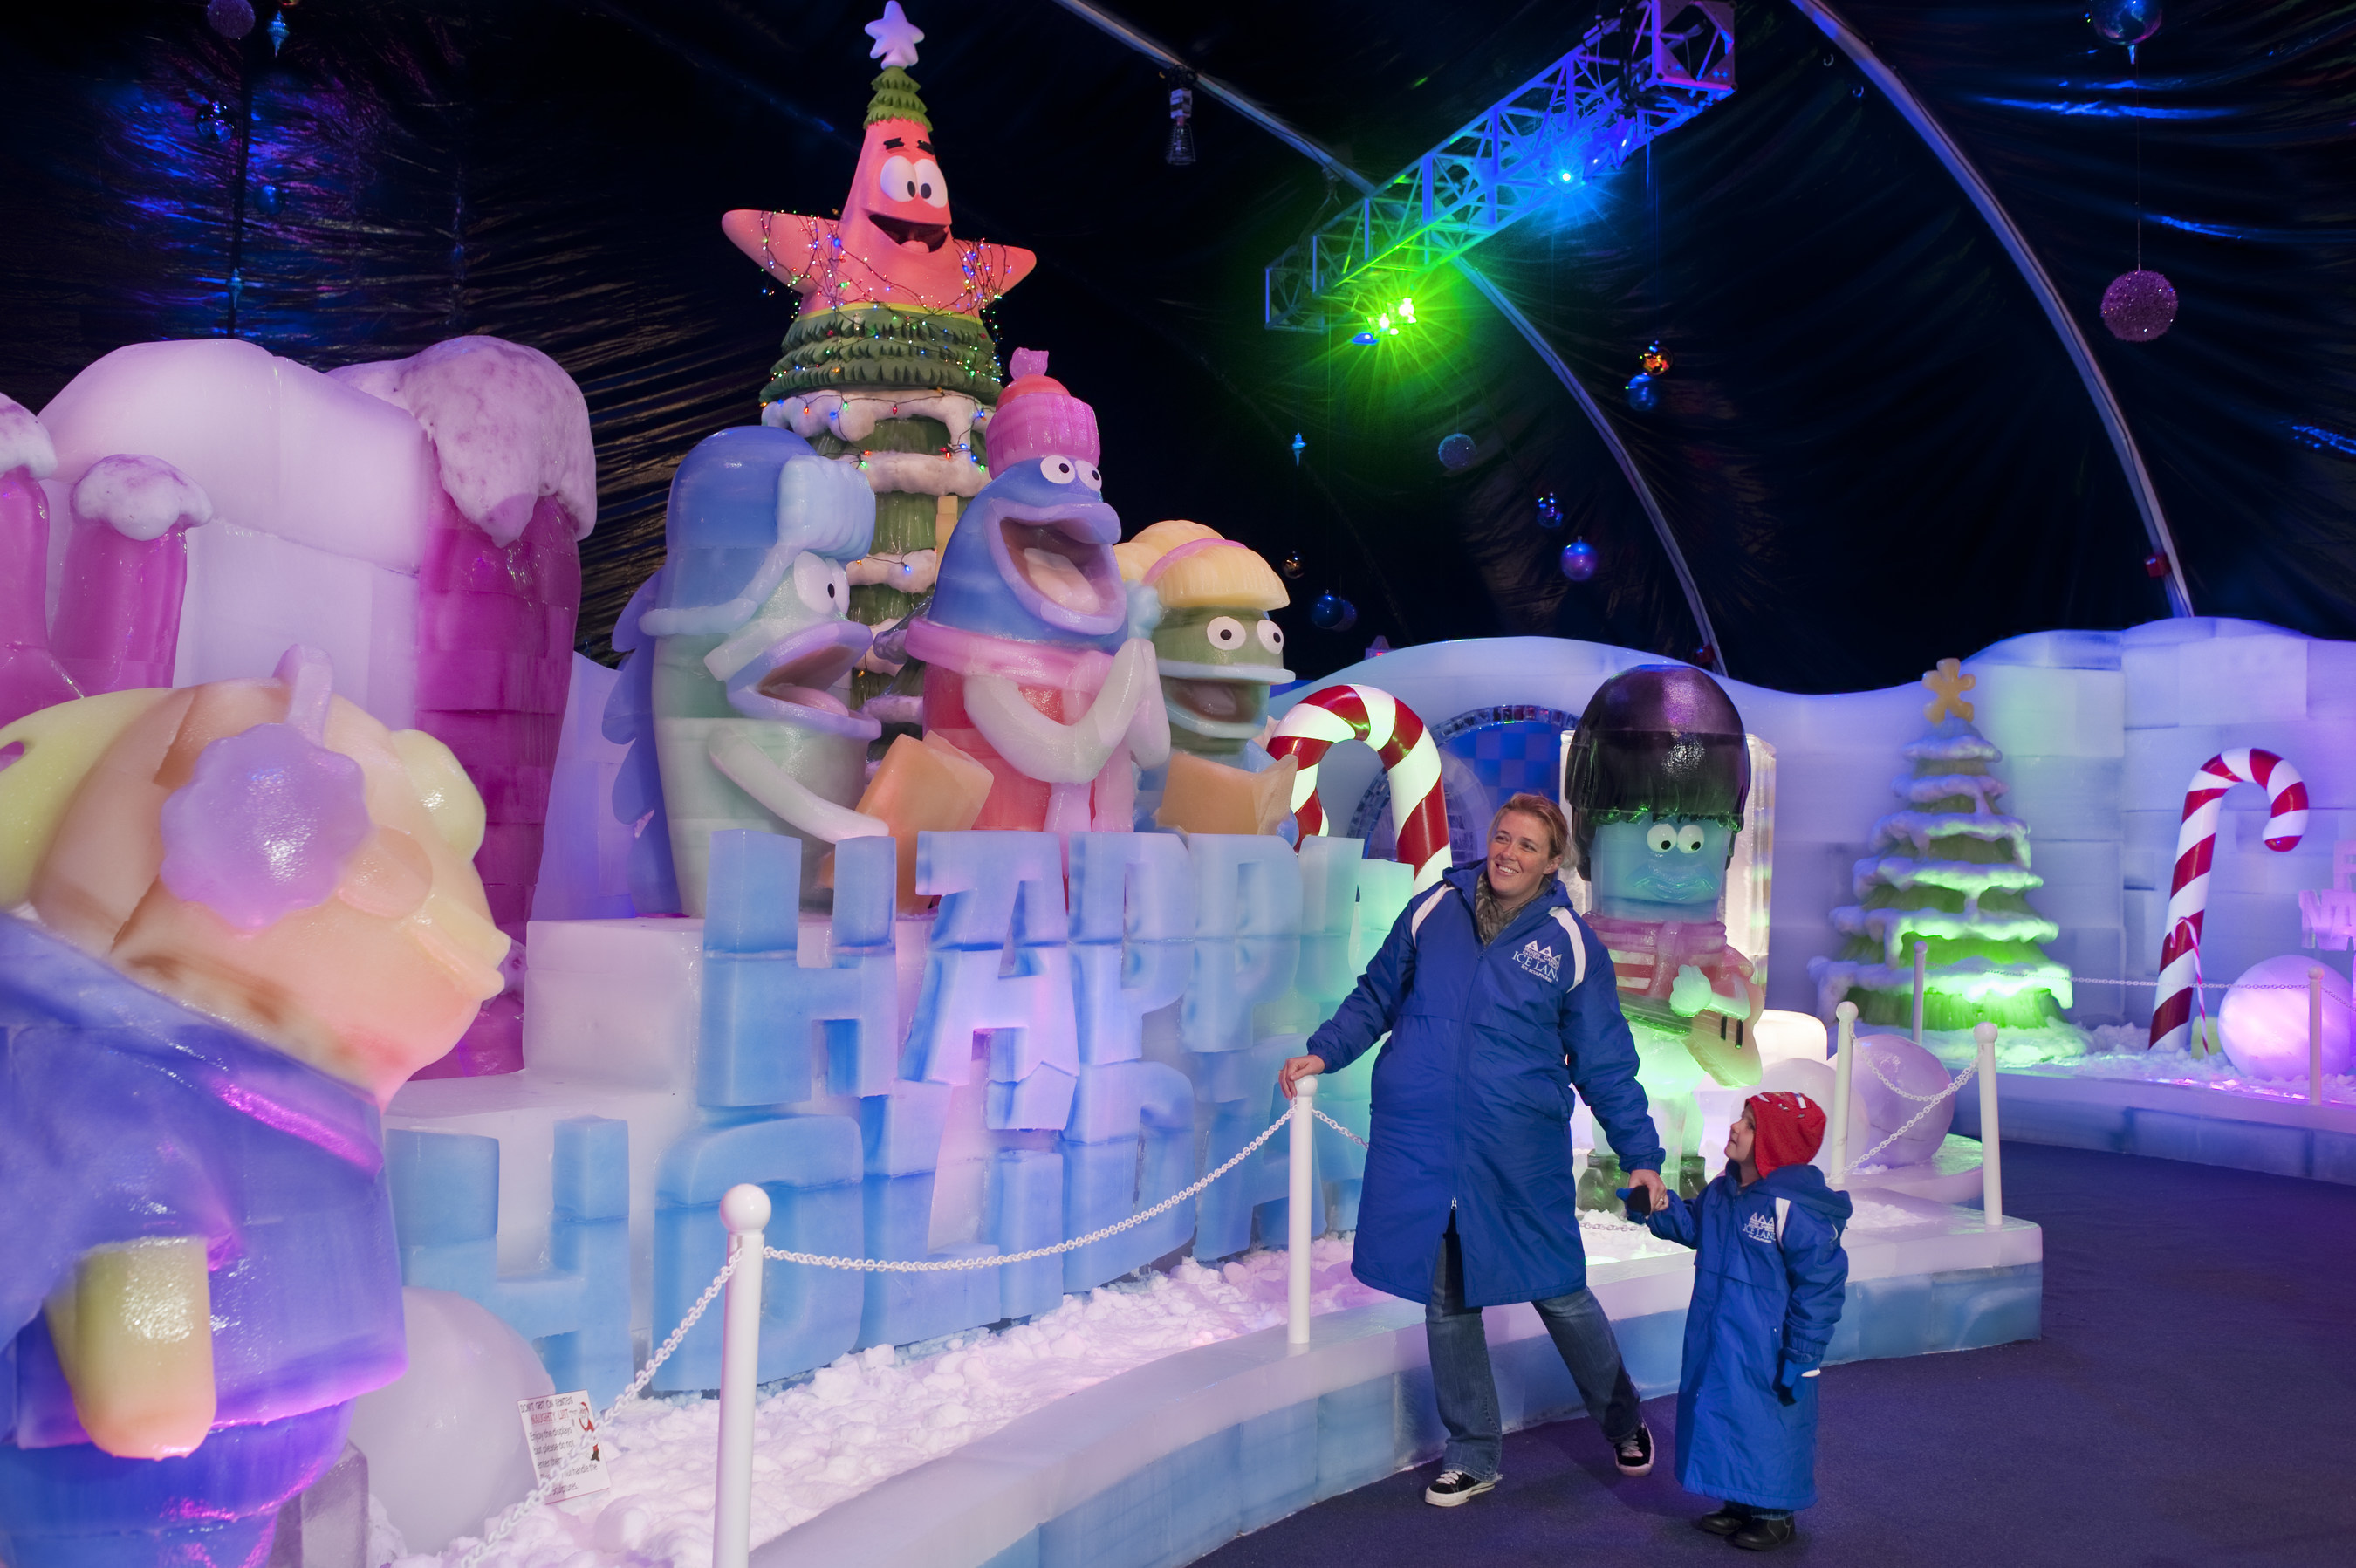 Moody Gardens Christmas.Moody Gardens And Nickelodeon Reveal First Glimpse Of Brand